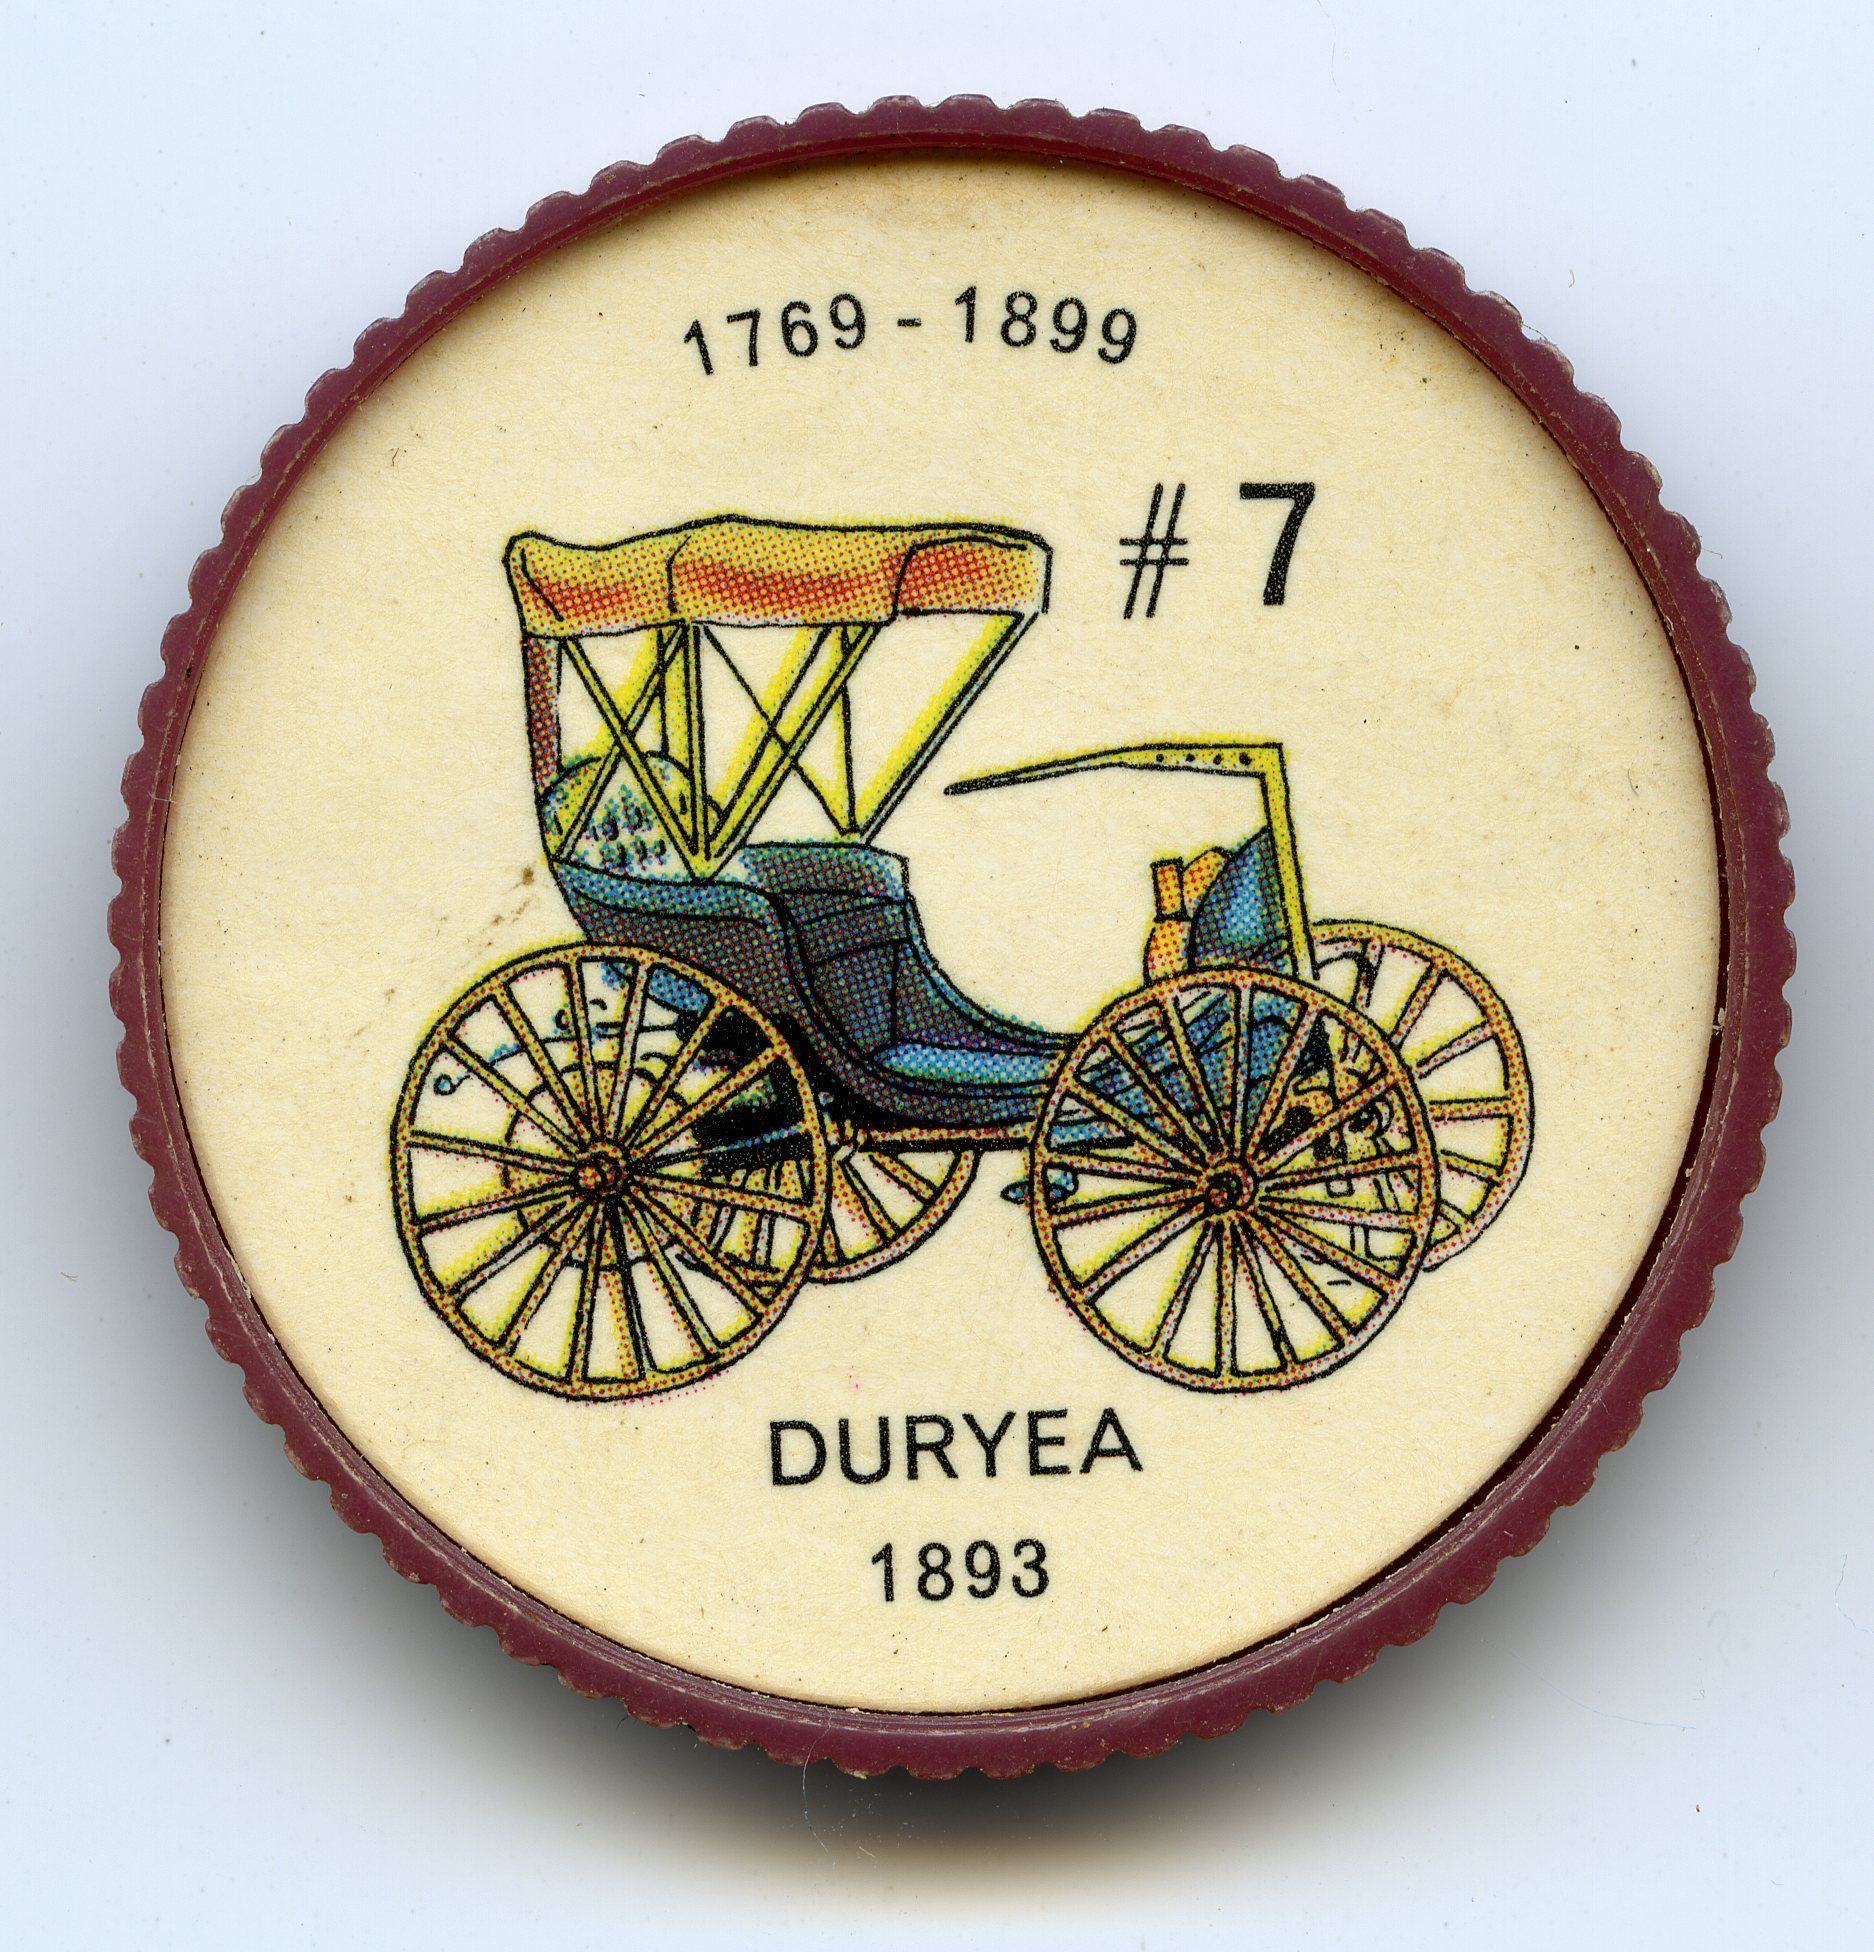 Jello-O Coin 7 - Duryea (1893) - The Duryea was one of the first ...